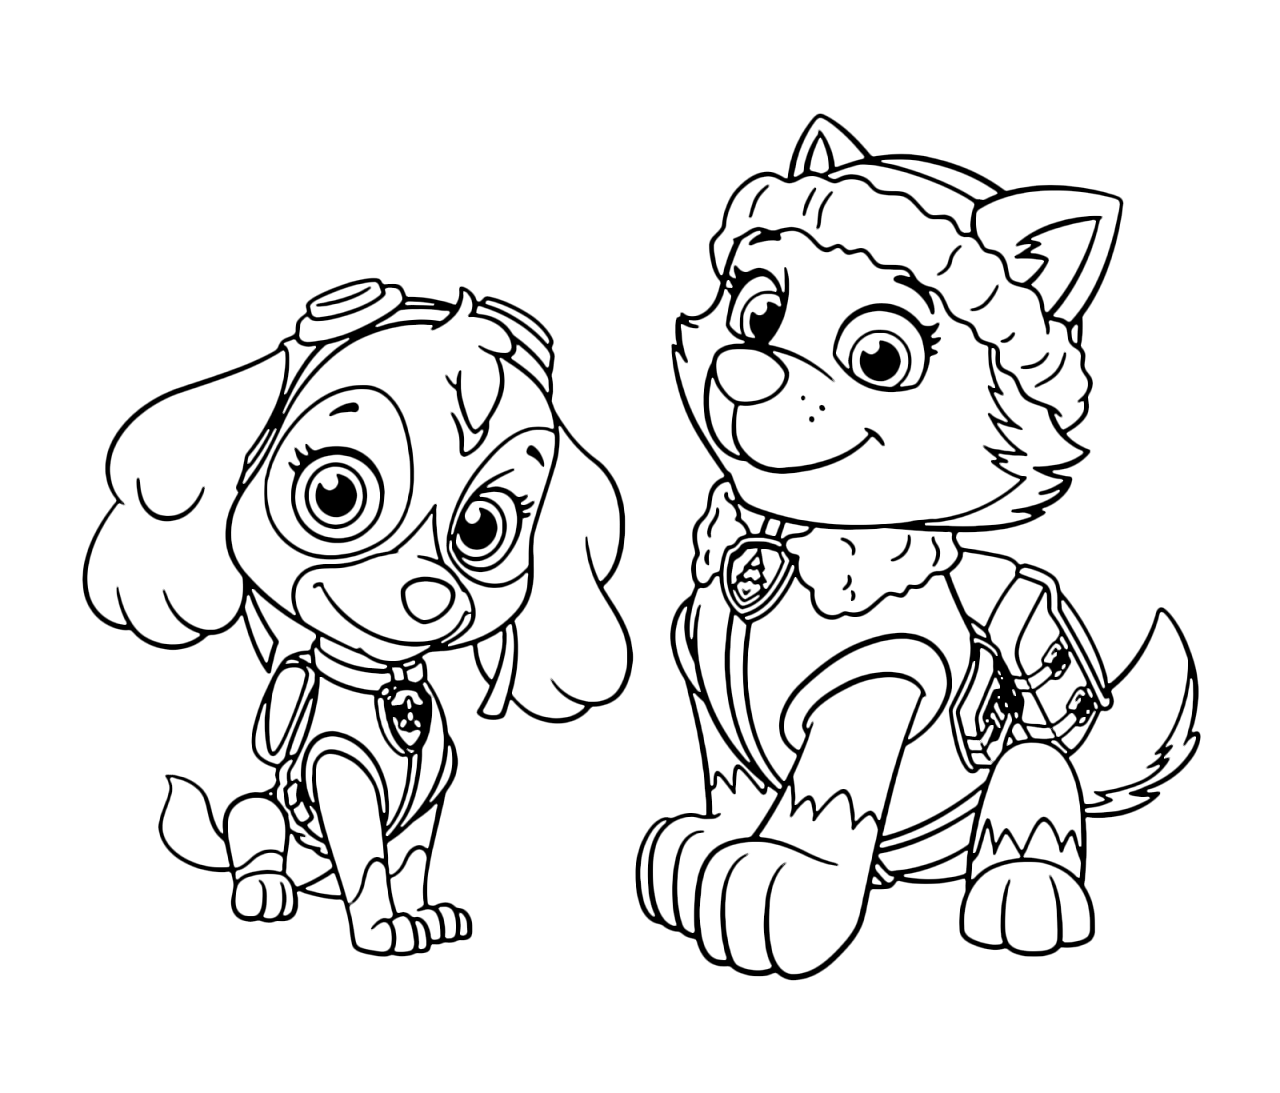 paw patrol coloring outline free paw patrol coloring pages happiness is homemade coloring outline paw patrol